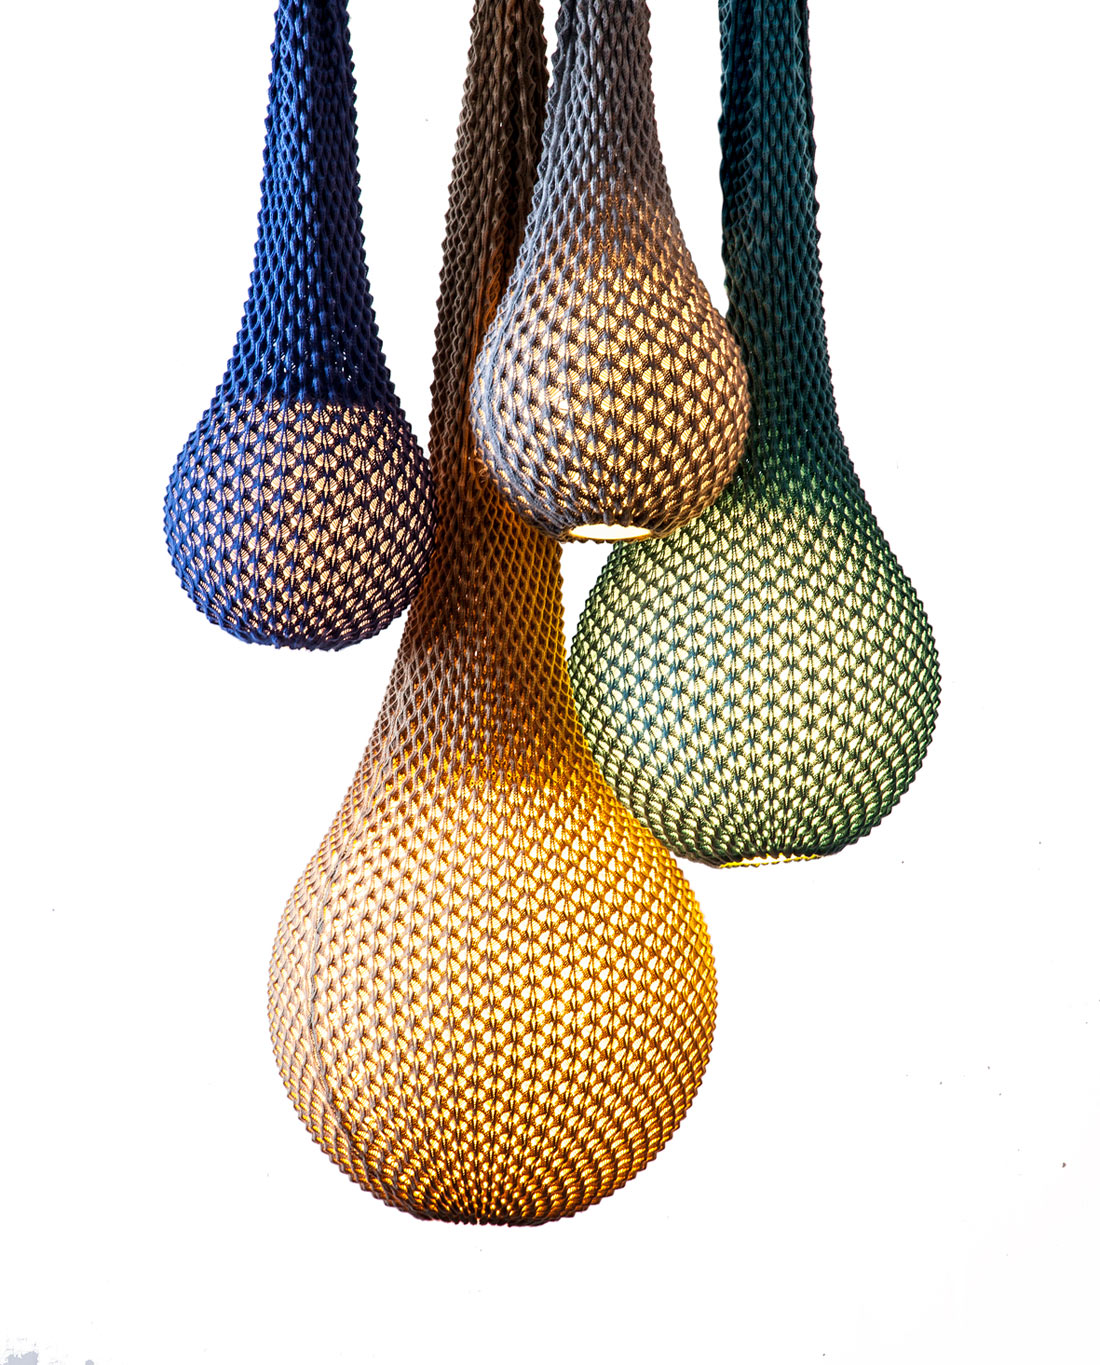 crochet-lamp-shades-ariel-zuckerman-1